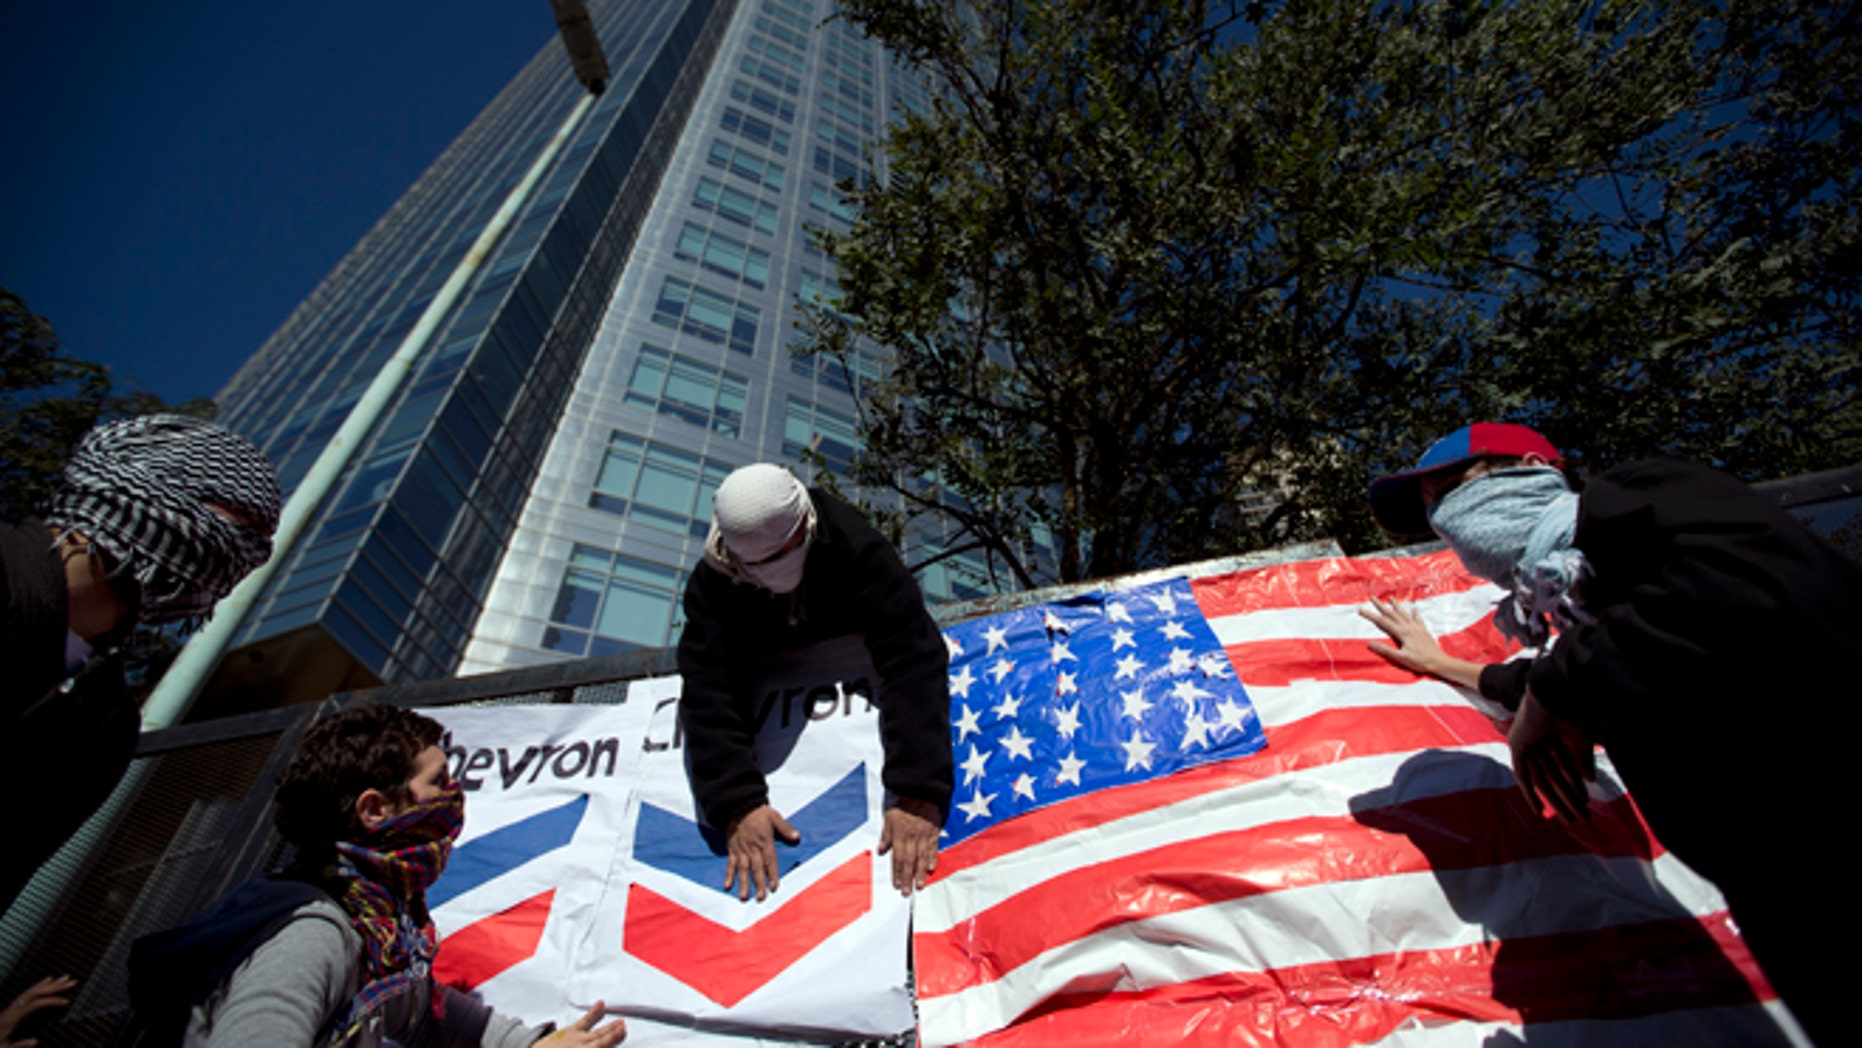 Demonstrators place a U.S. flag and a Chevron sign on a fence in front of Argentina's state-controlled YPF oil company headquarters to protest a deal between YPF and U.S. oil company Chevron in Buenos Aires, Argentina, Tuesday, July 16, 2013. YPF, which was expropriated in 2012 from Spain's Repsol, is finalizing the details of an agreement with Chevron which would invest in the first pilot for massive exploration for unconventional oil and gas in the Vaca Muerta region. (AP Photo/Victor R. Caivano)